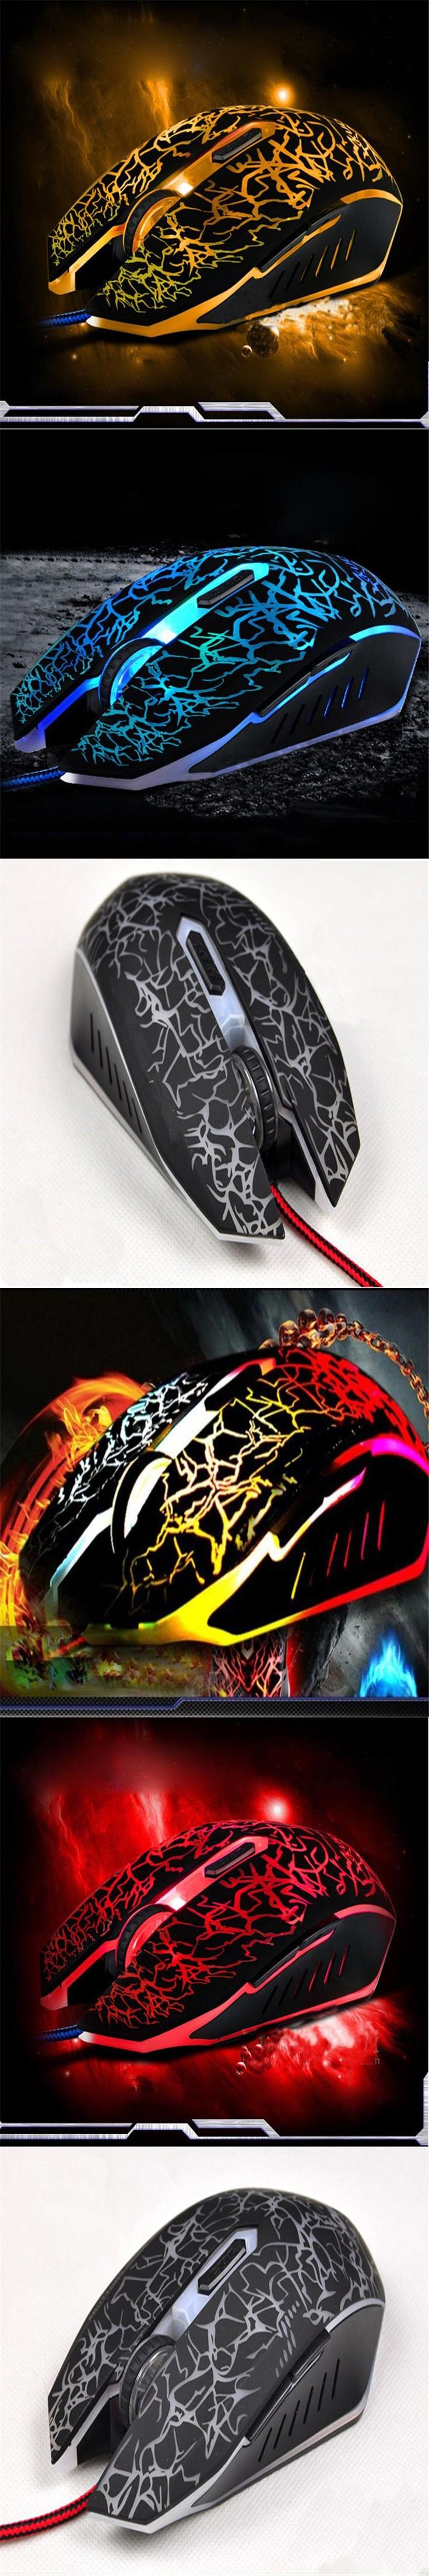 Wired Mouse Portable gaming Wired bluetooth Professional Colorful Backlight 4000DPI Optical Wired Gaming Mouse Mice 35